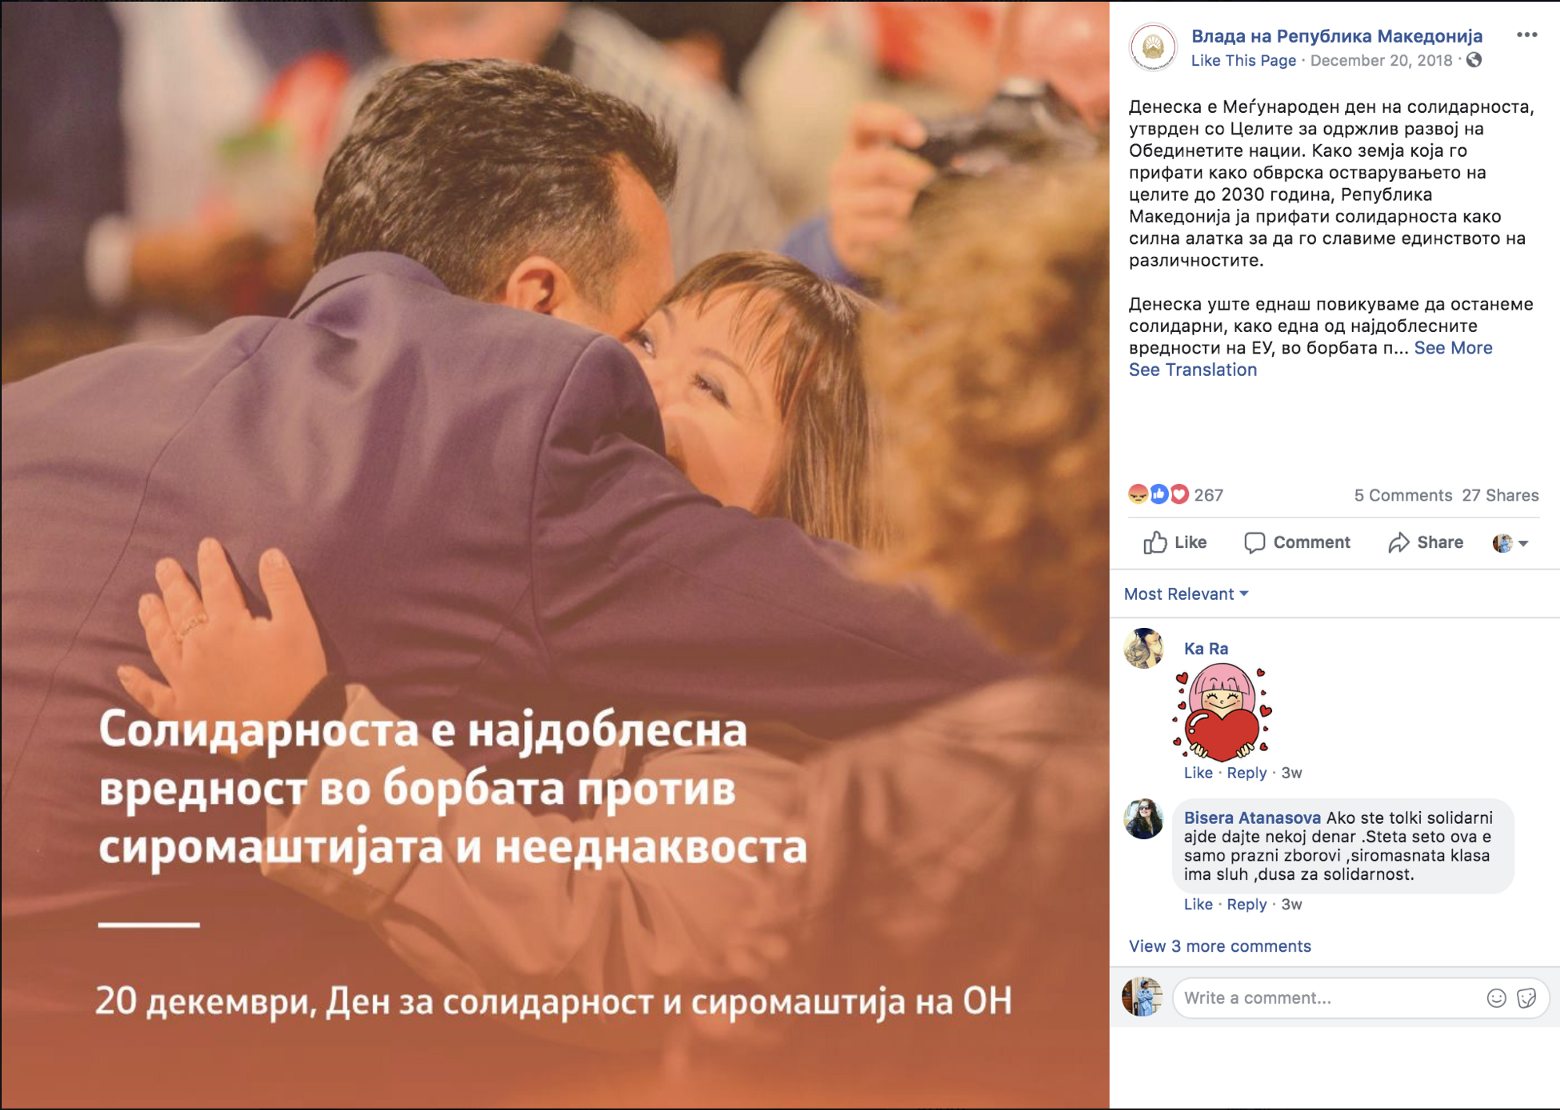 Coordinated Comments in Macedonia